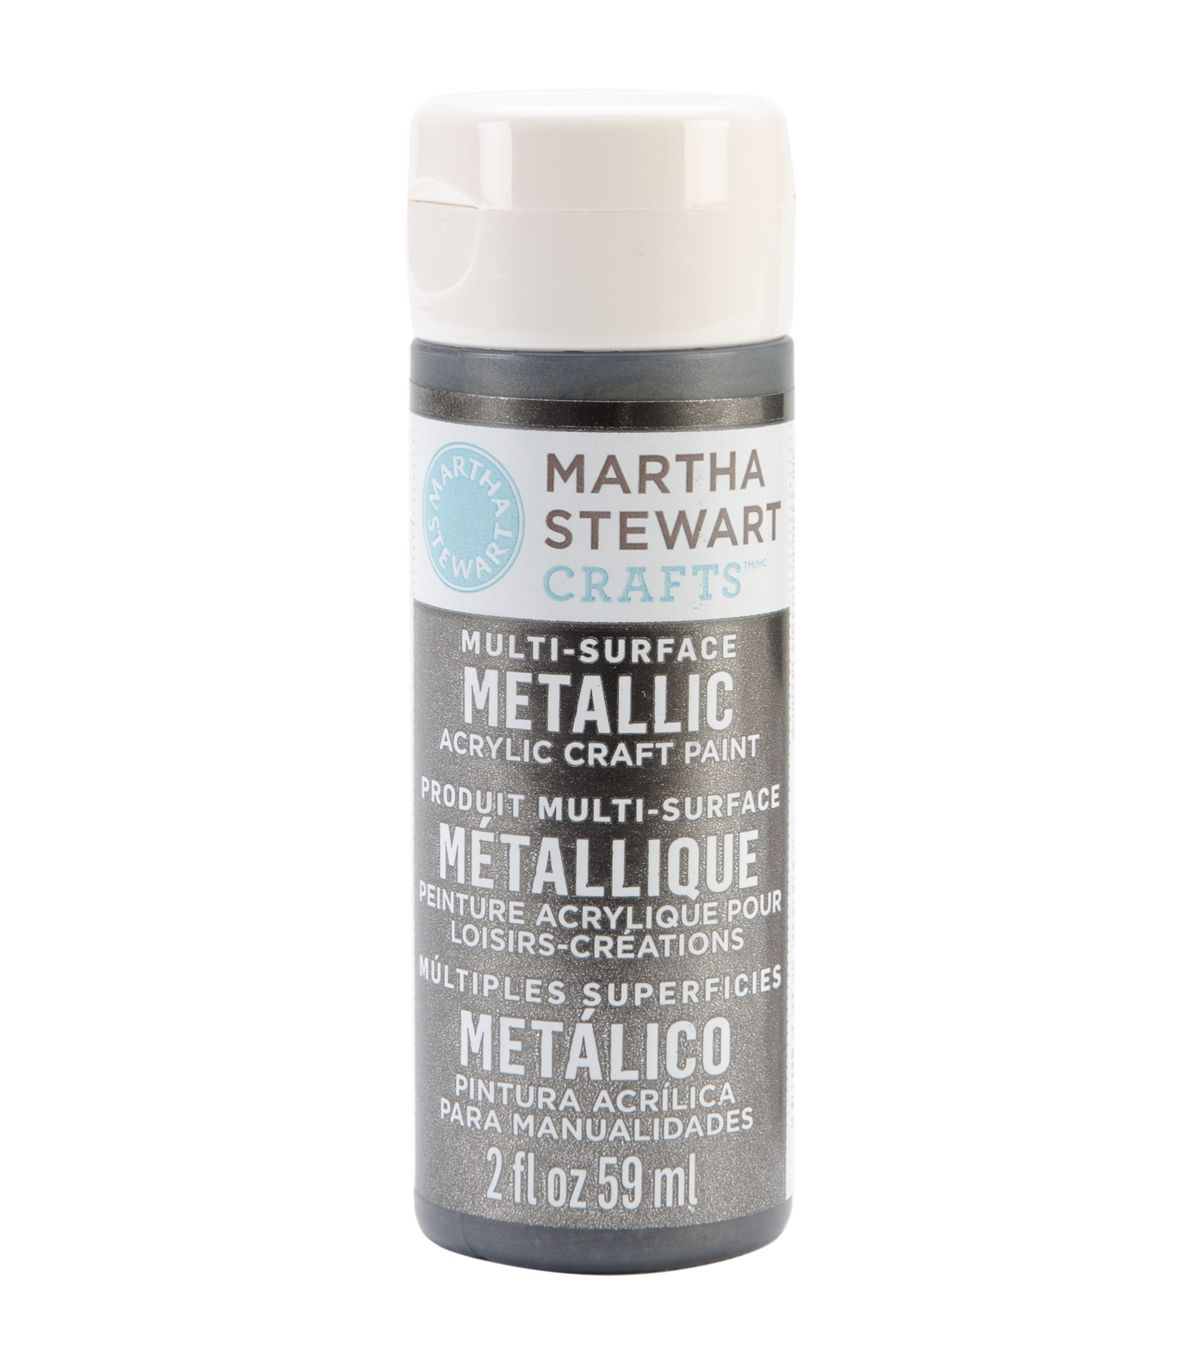 Martha Stewart Metallic Acrylic Craft Paint 2 Oz   Champagne